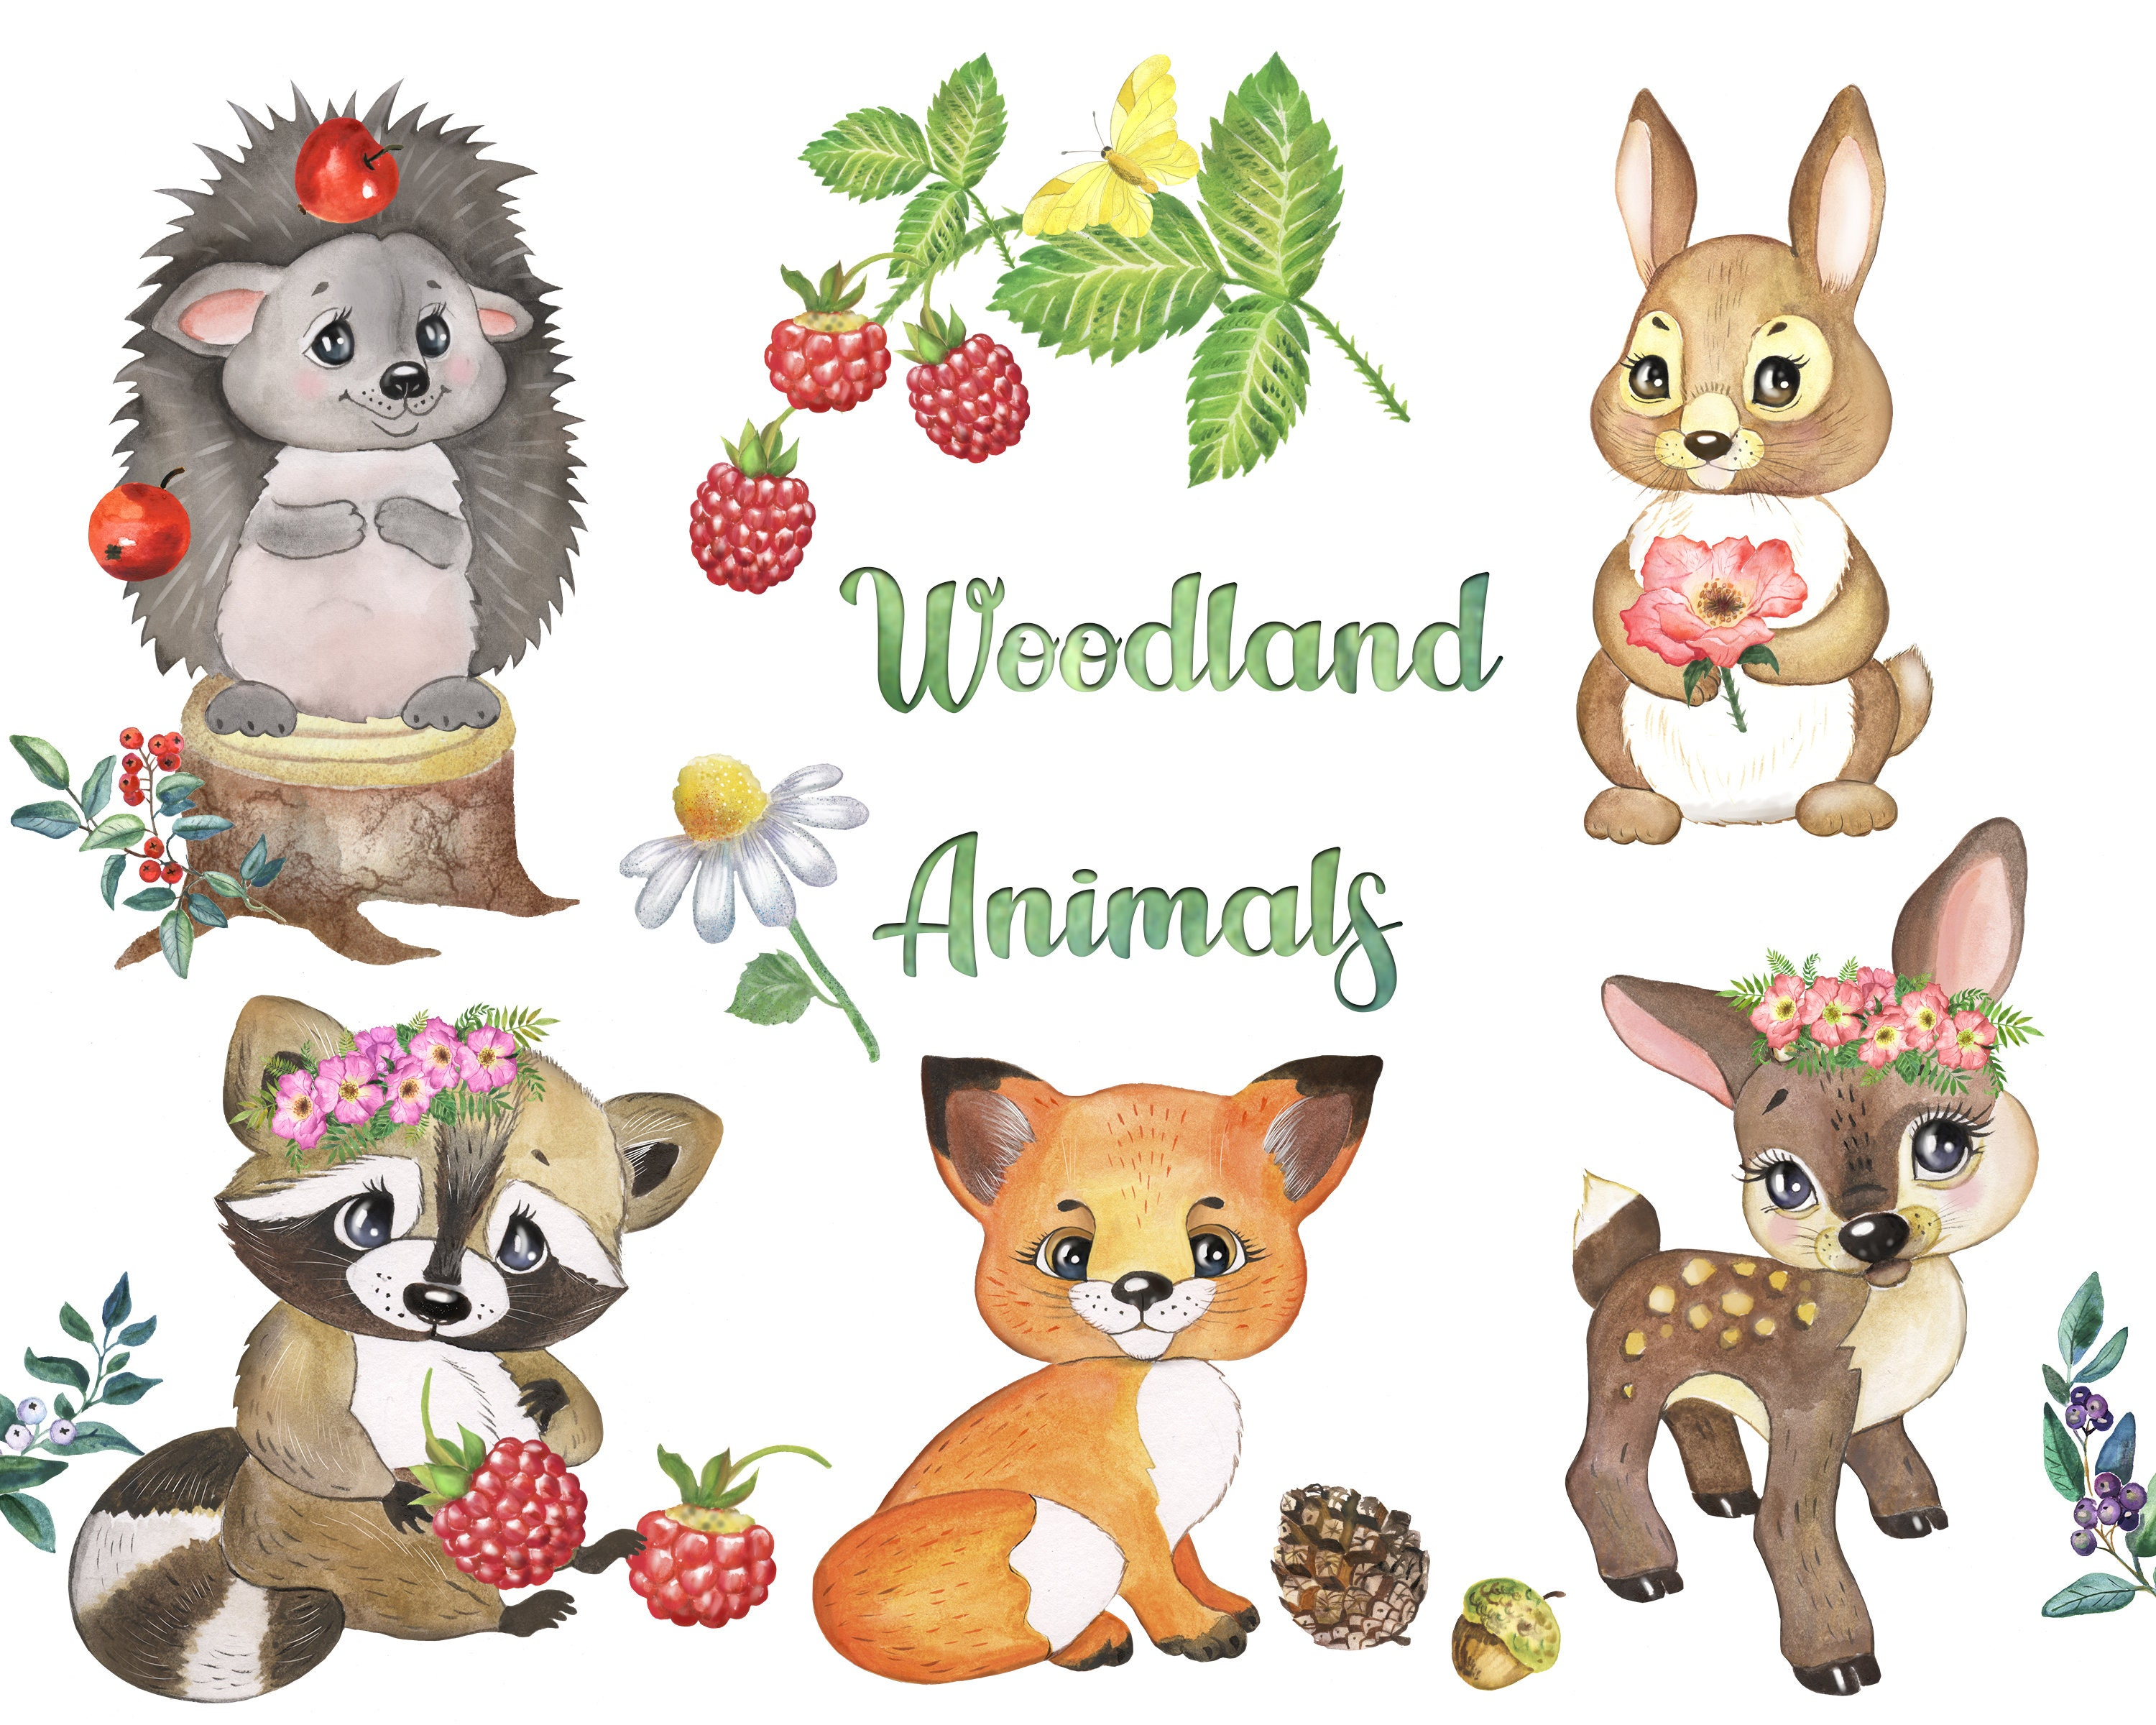 Woodland Animals Clipart. Forest Animal Clip art. Woodland Creatures.  Woodland Nursery Clipart PNG